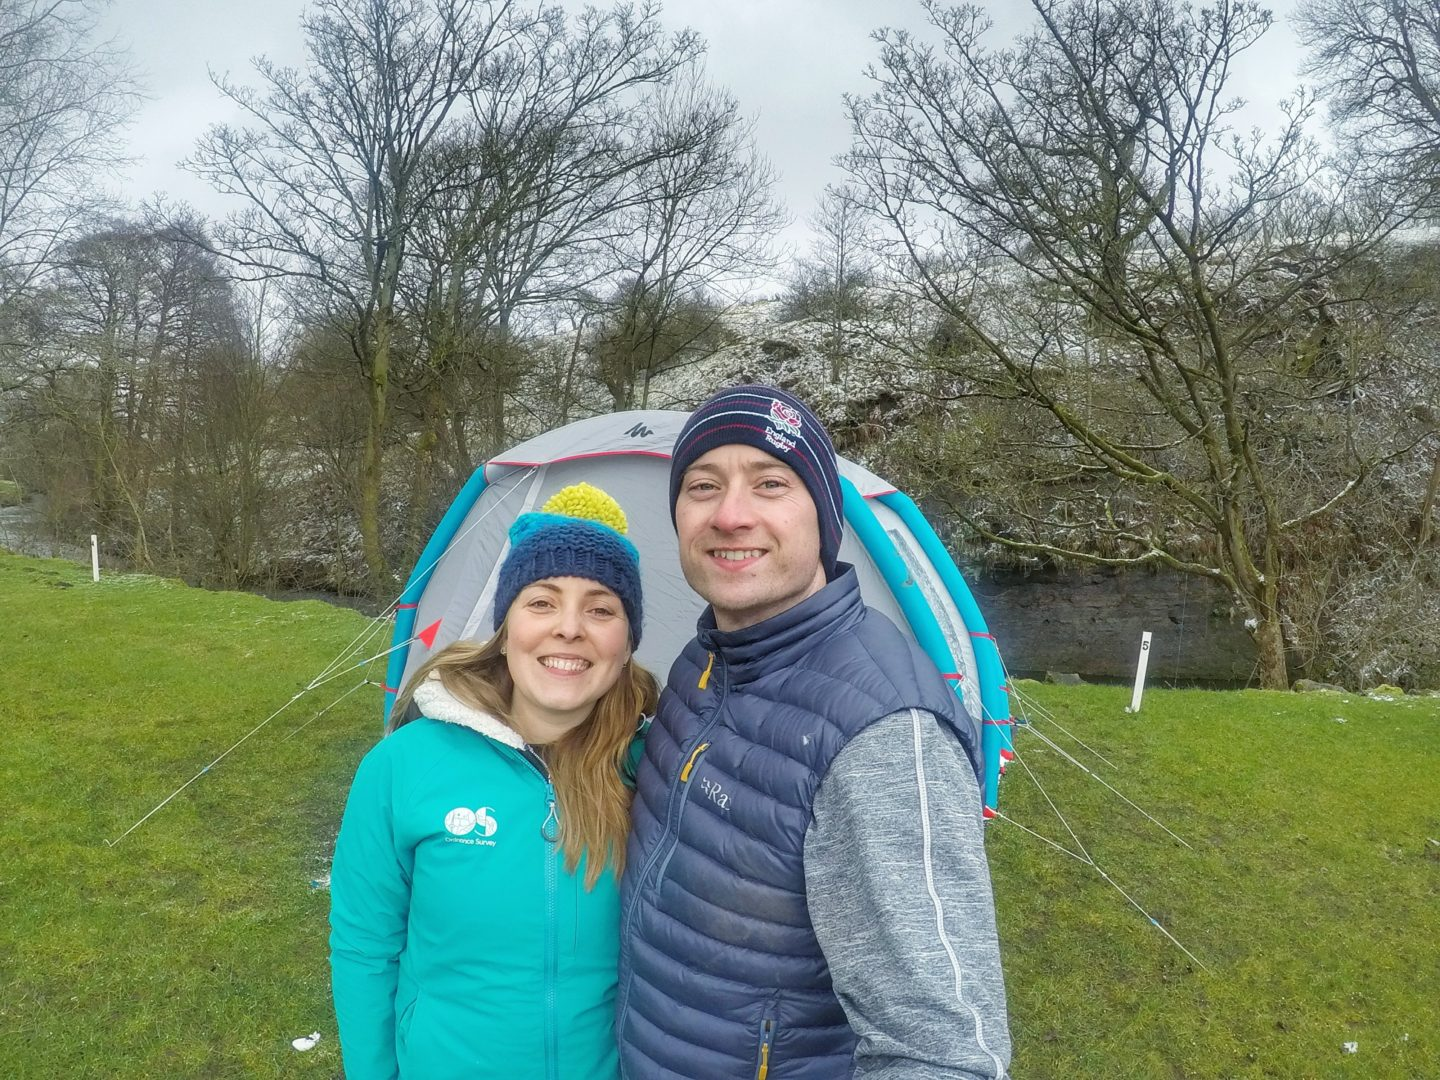 Decathlon Inflatable Tent Review